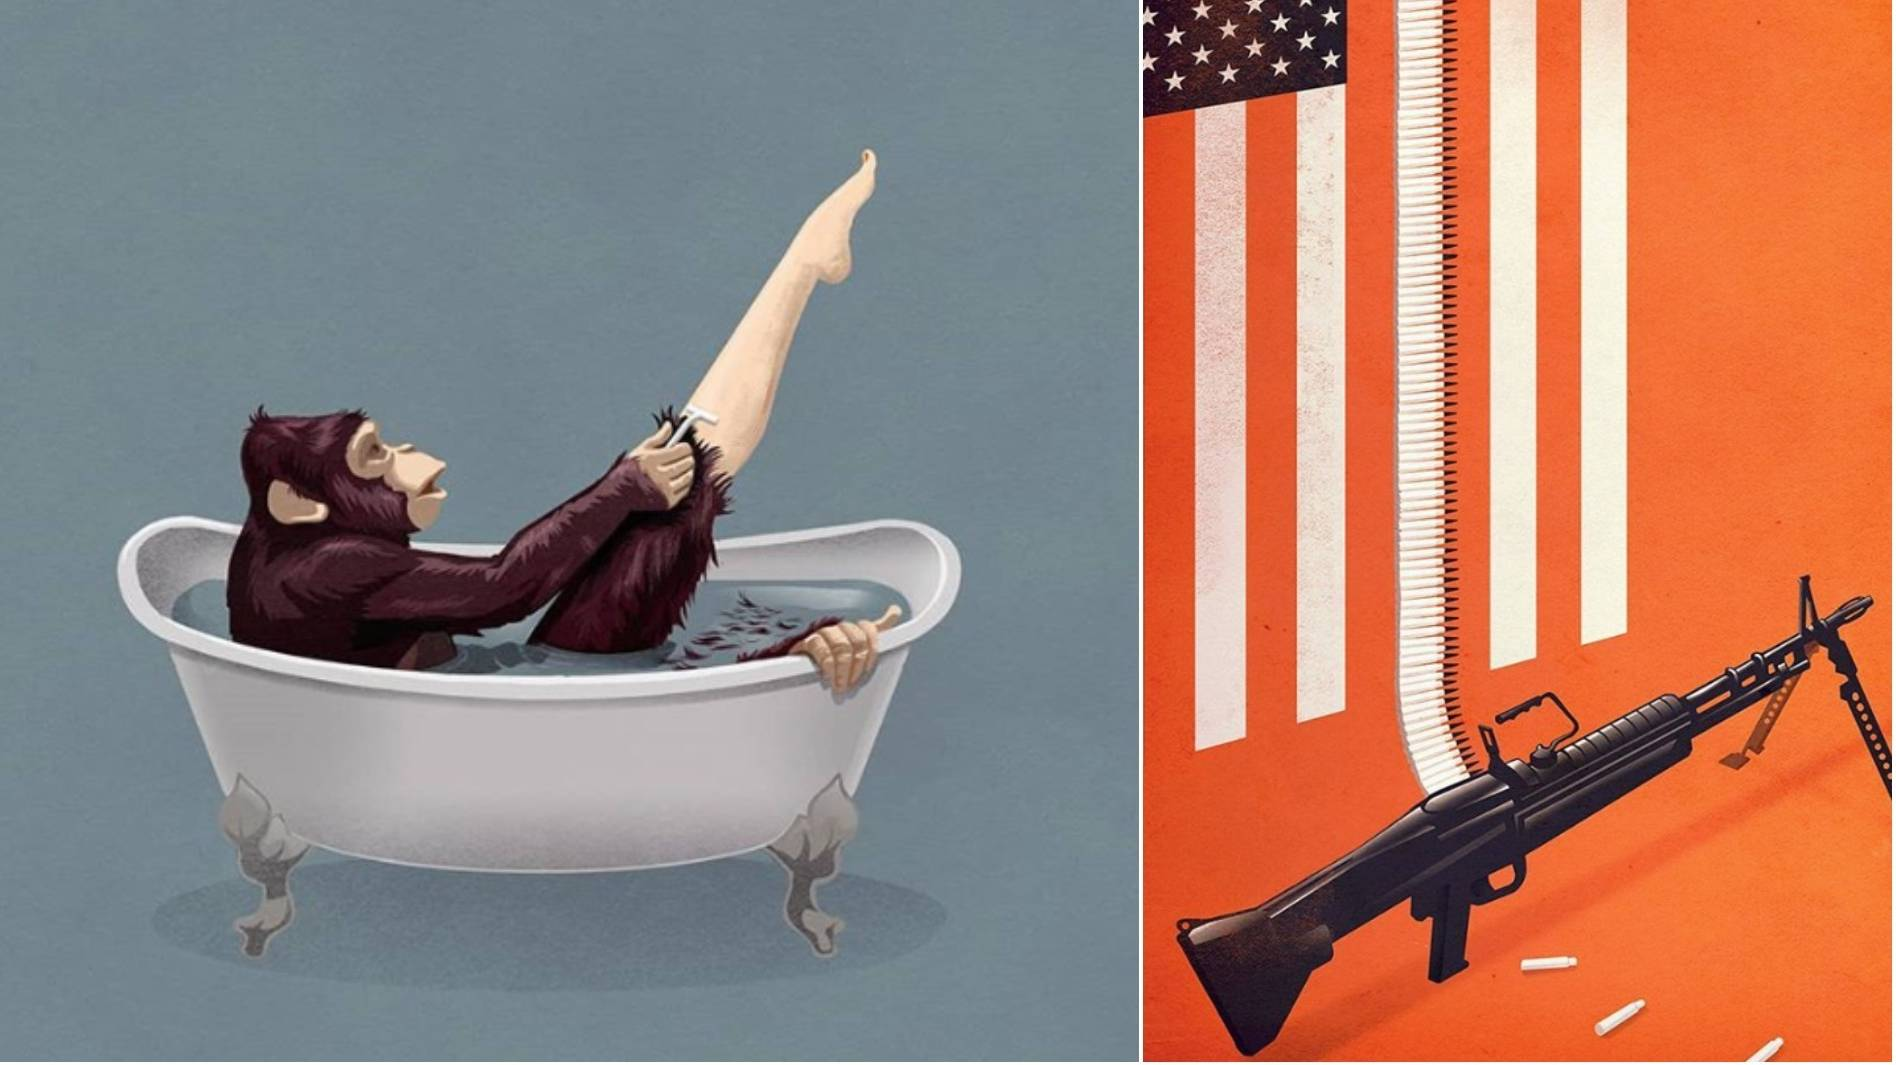 These illustrations show things in the world as they are